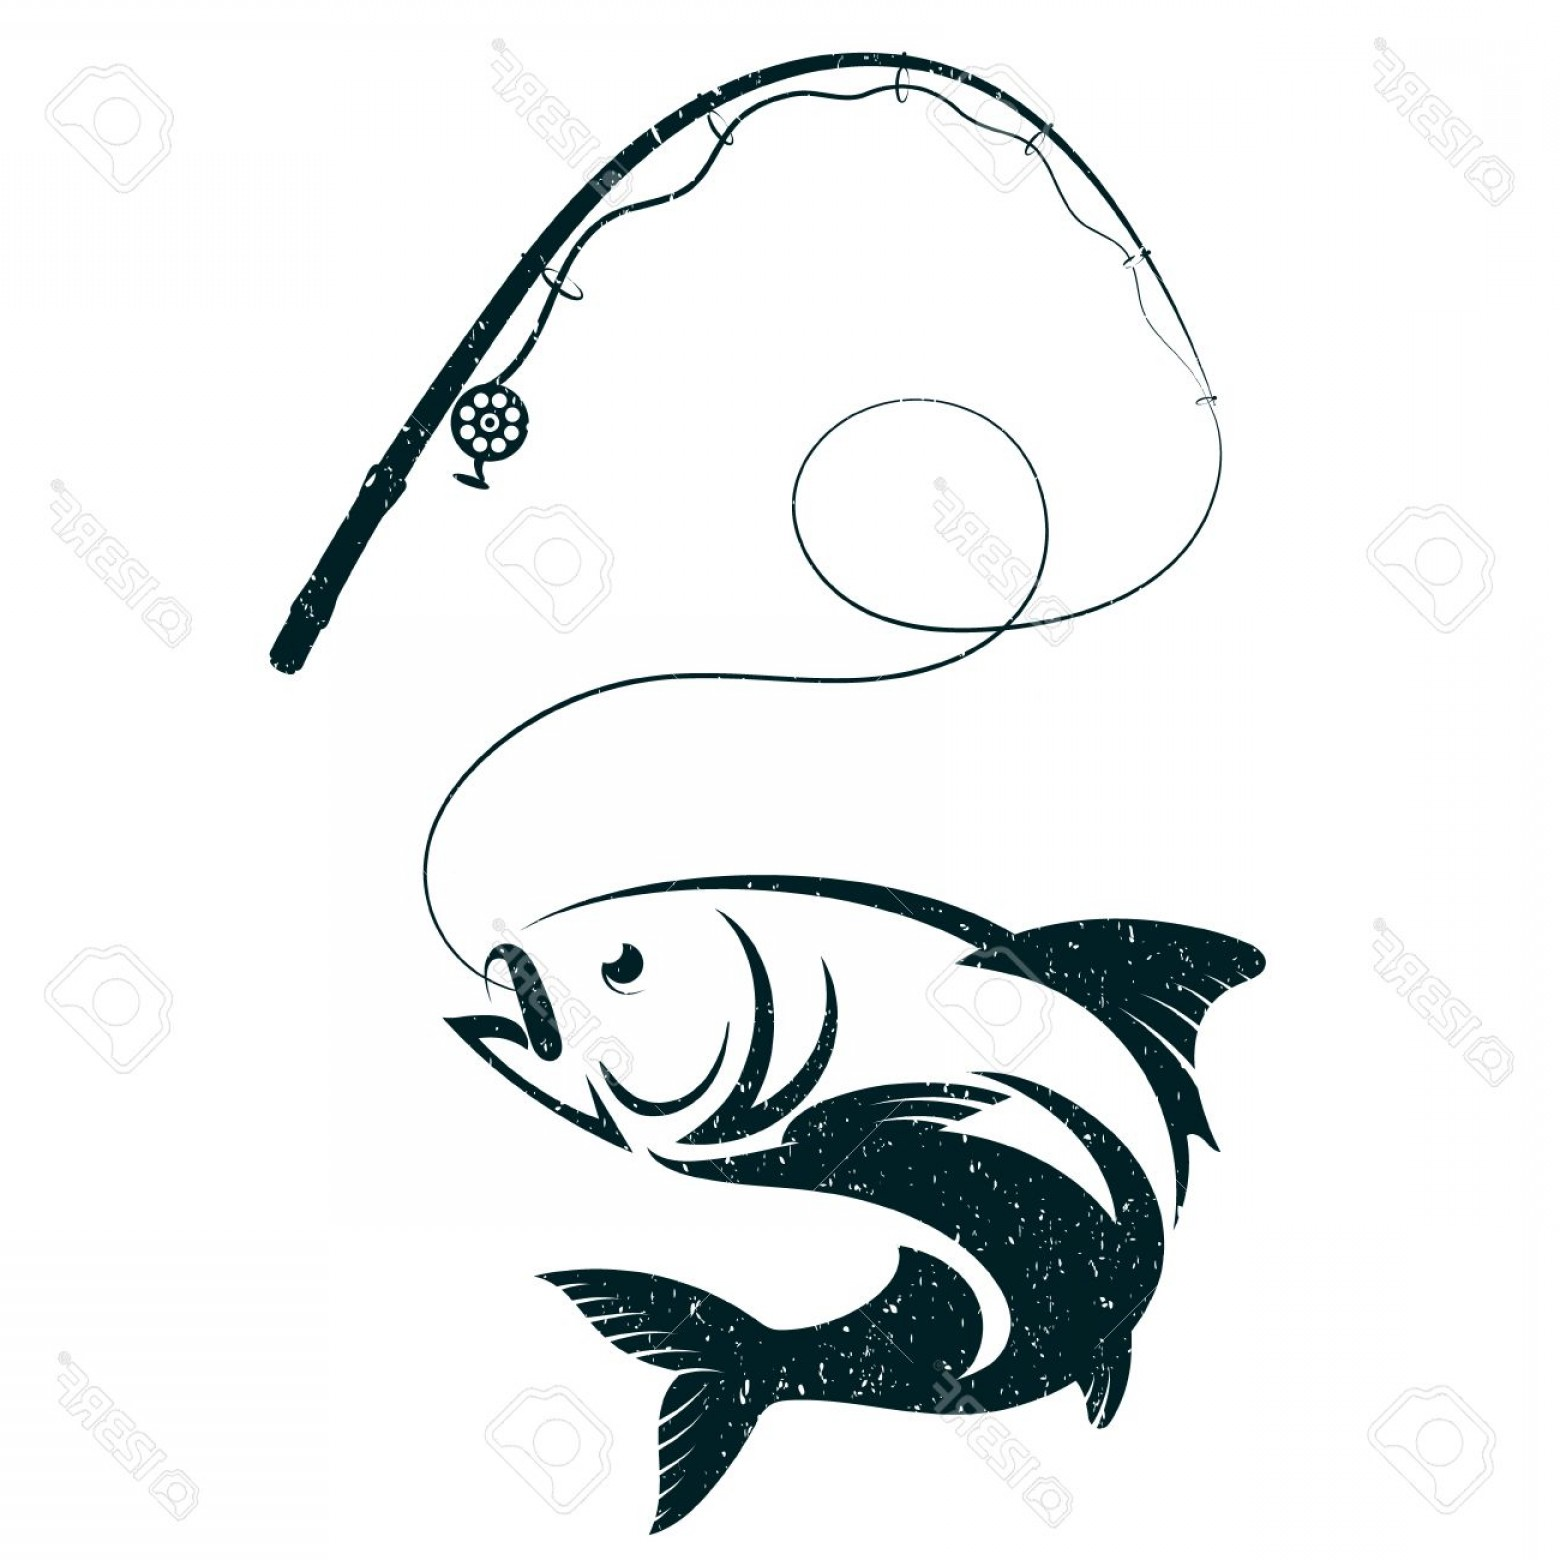 Fishing Pole Silhouette Vector: Photostock Vector Fish On Hook And Fishing Rod Silhouette Vector